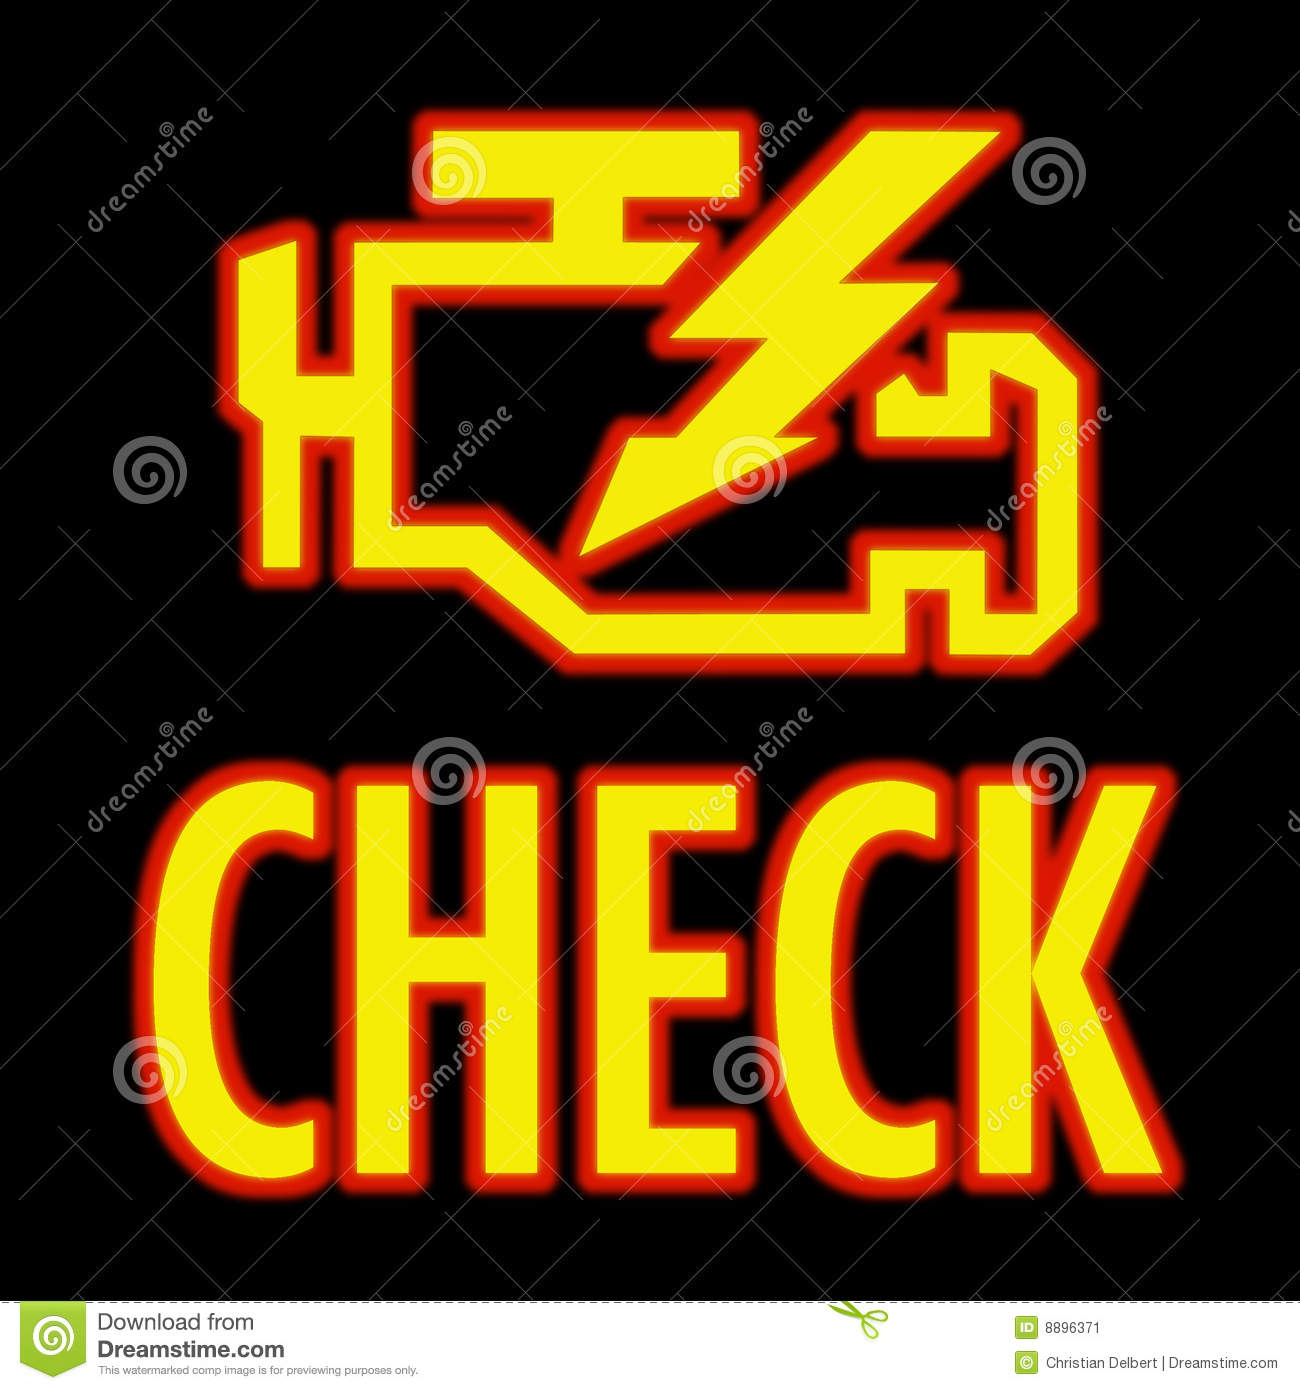 Check engine light stock illustrations 144 check engine light check engine light stock illustrations 144 check engine light stock illustrations vectors clipart dreamstime biocorpaavc Gallery